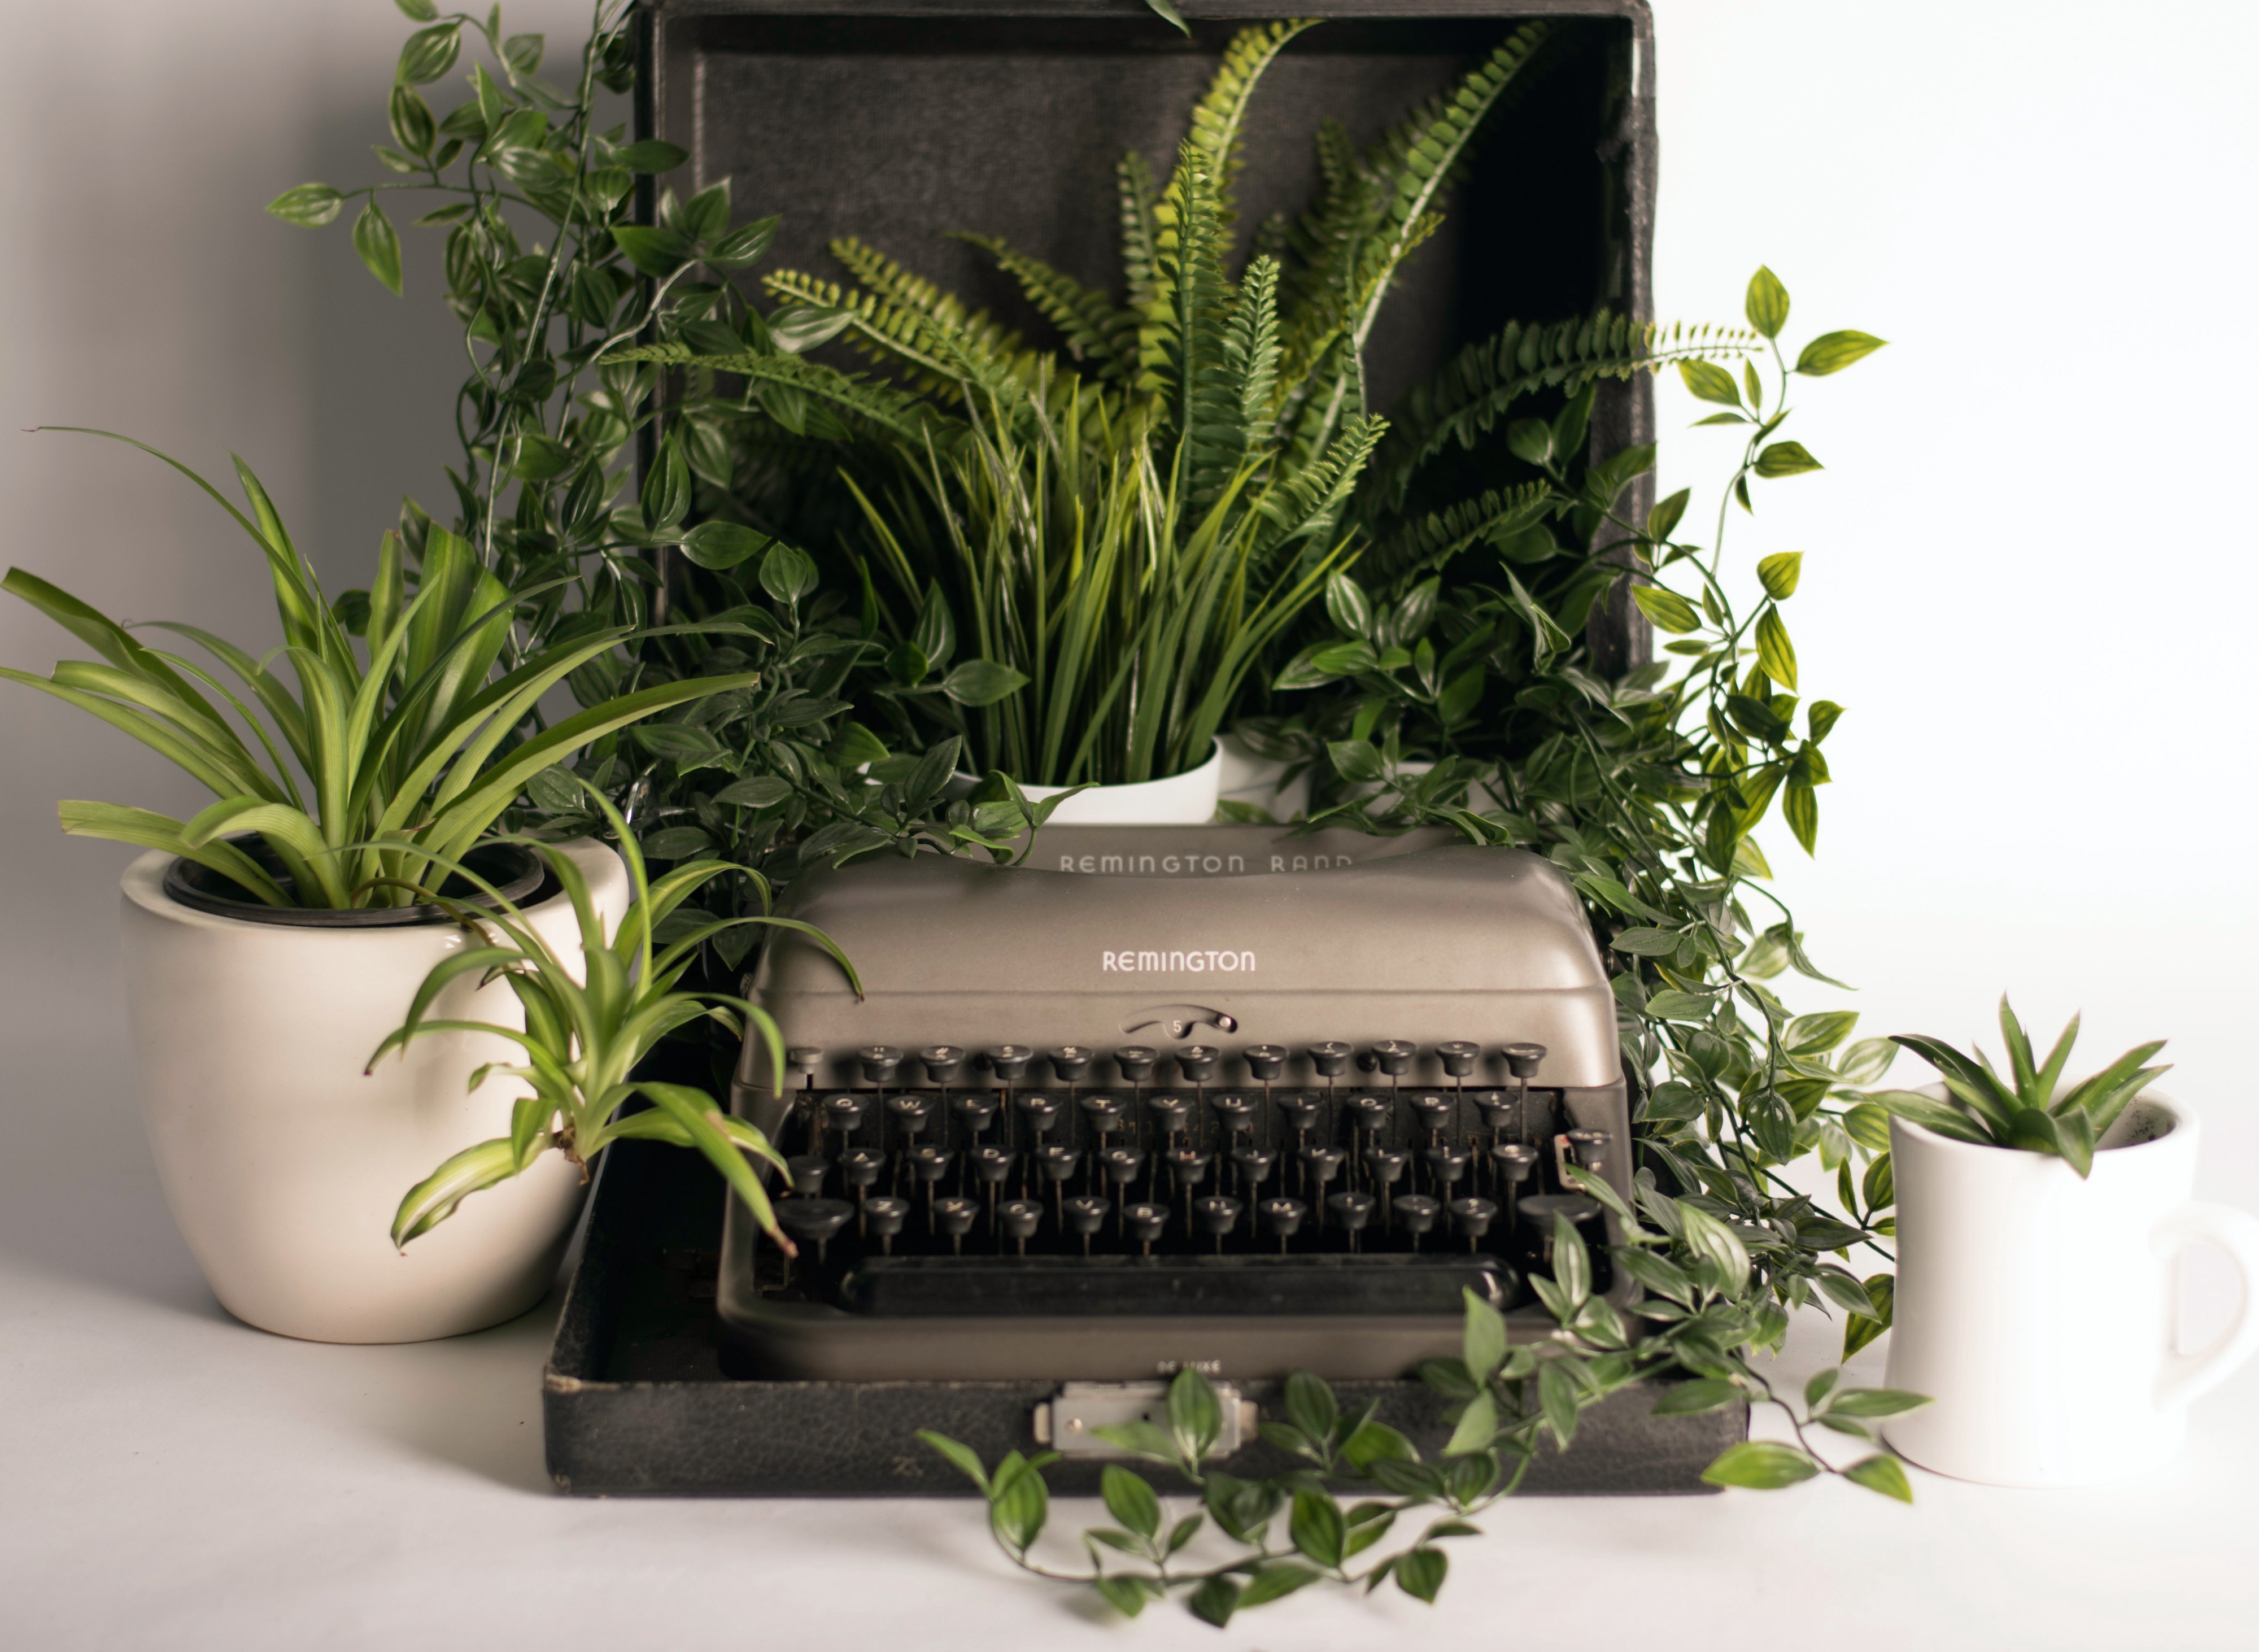 typewriter with green plants growing out of it